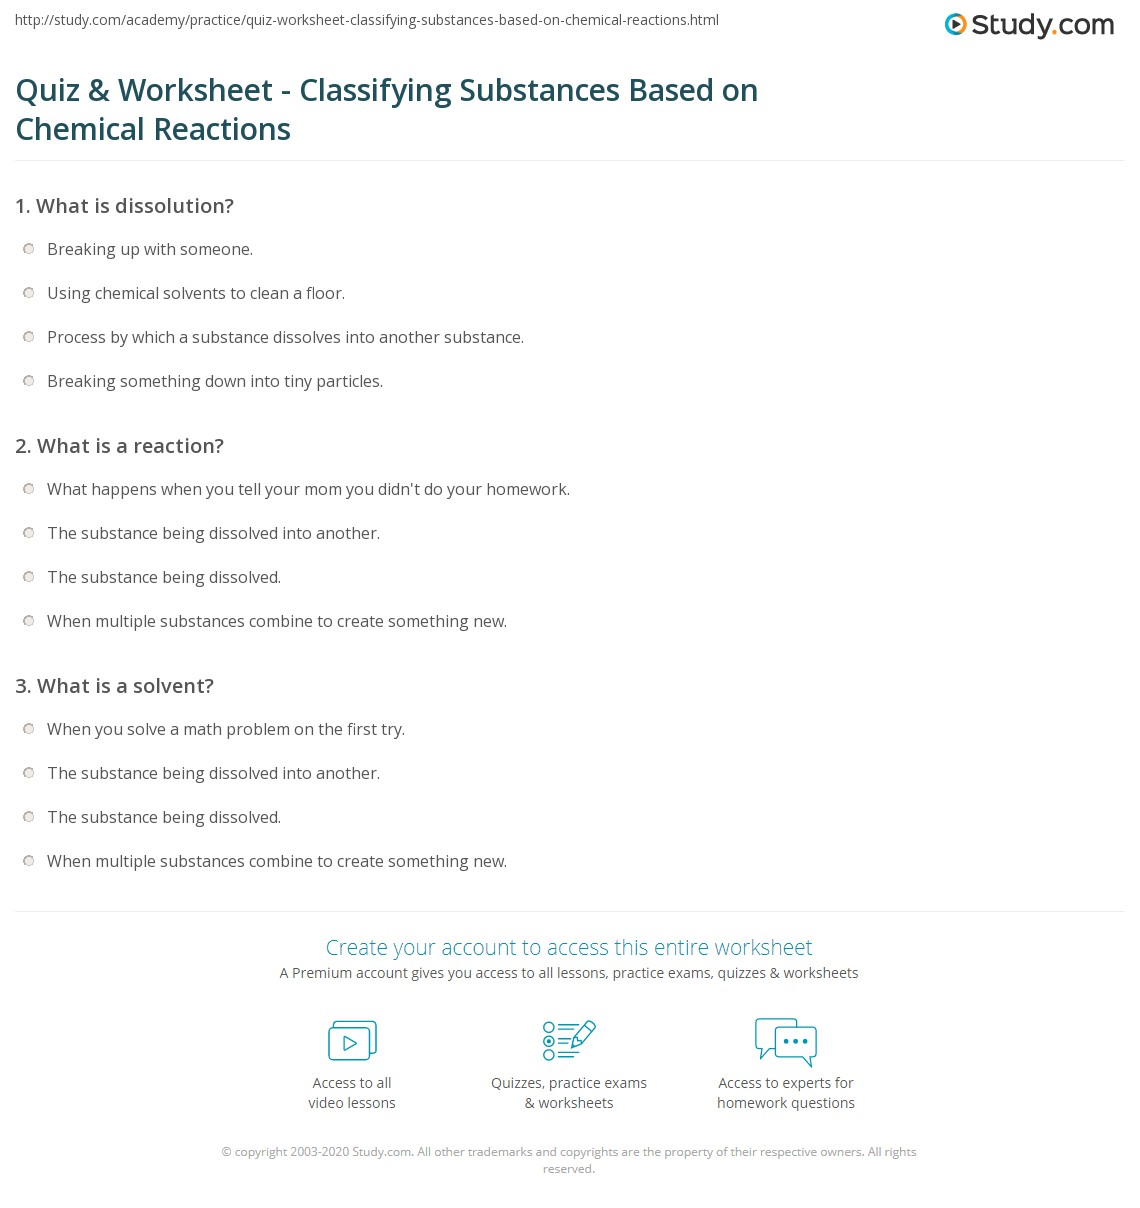 Worksheets Classifying Chemical Reactions Worksheet quiz worksheet classifying substances based on chemical print using reactions to identify worksheet